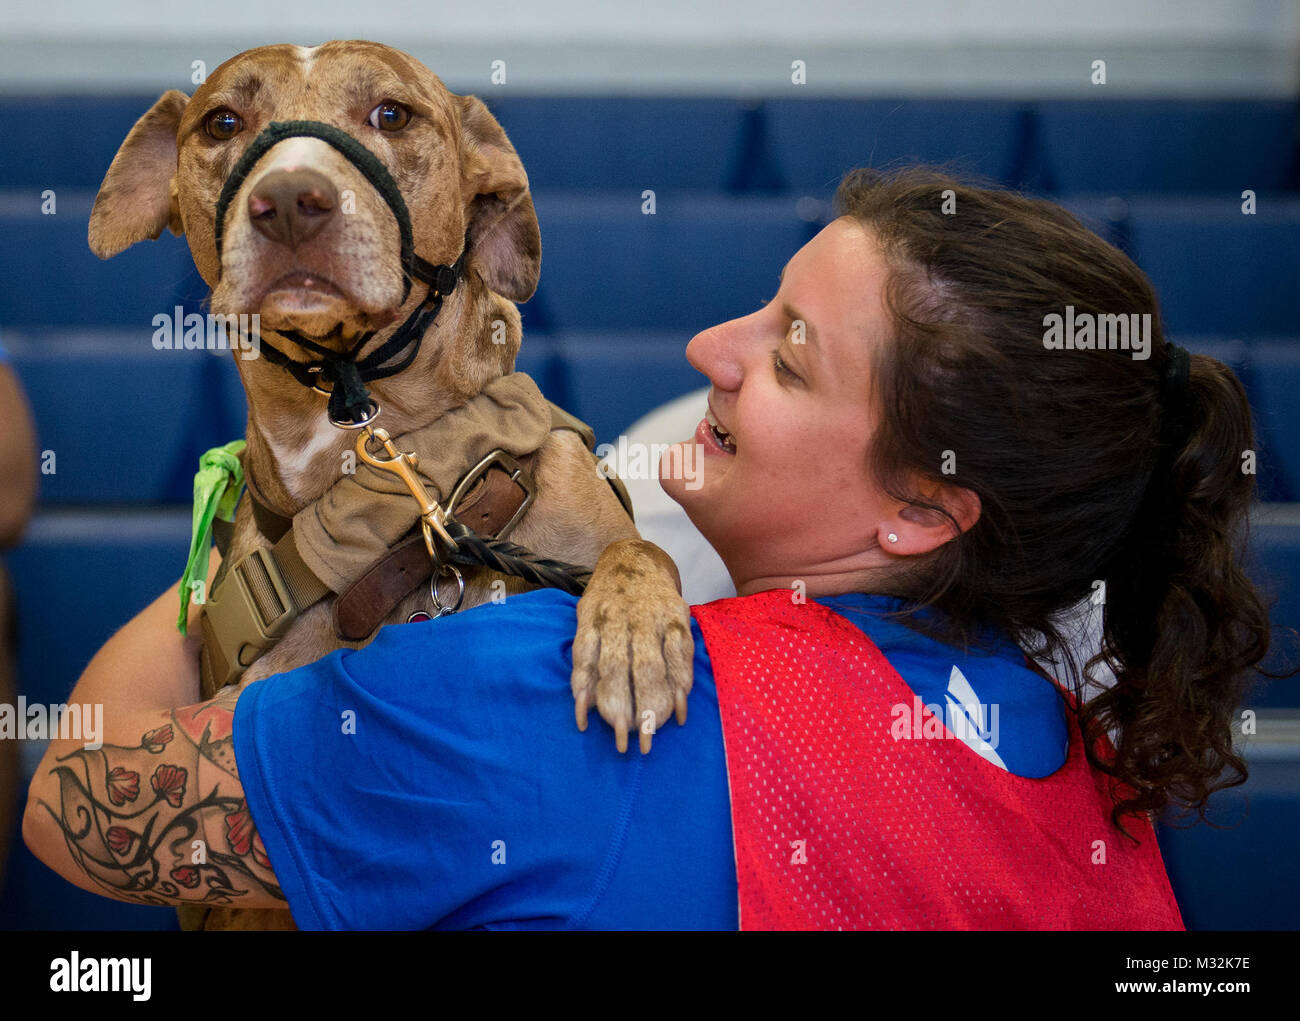 Hanna Stulberg, a Warrior CARE attendee, and her service dog, Valhalla, share a moment during the adaptive sports - Stock Image